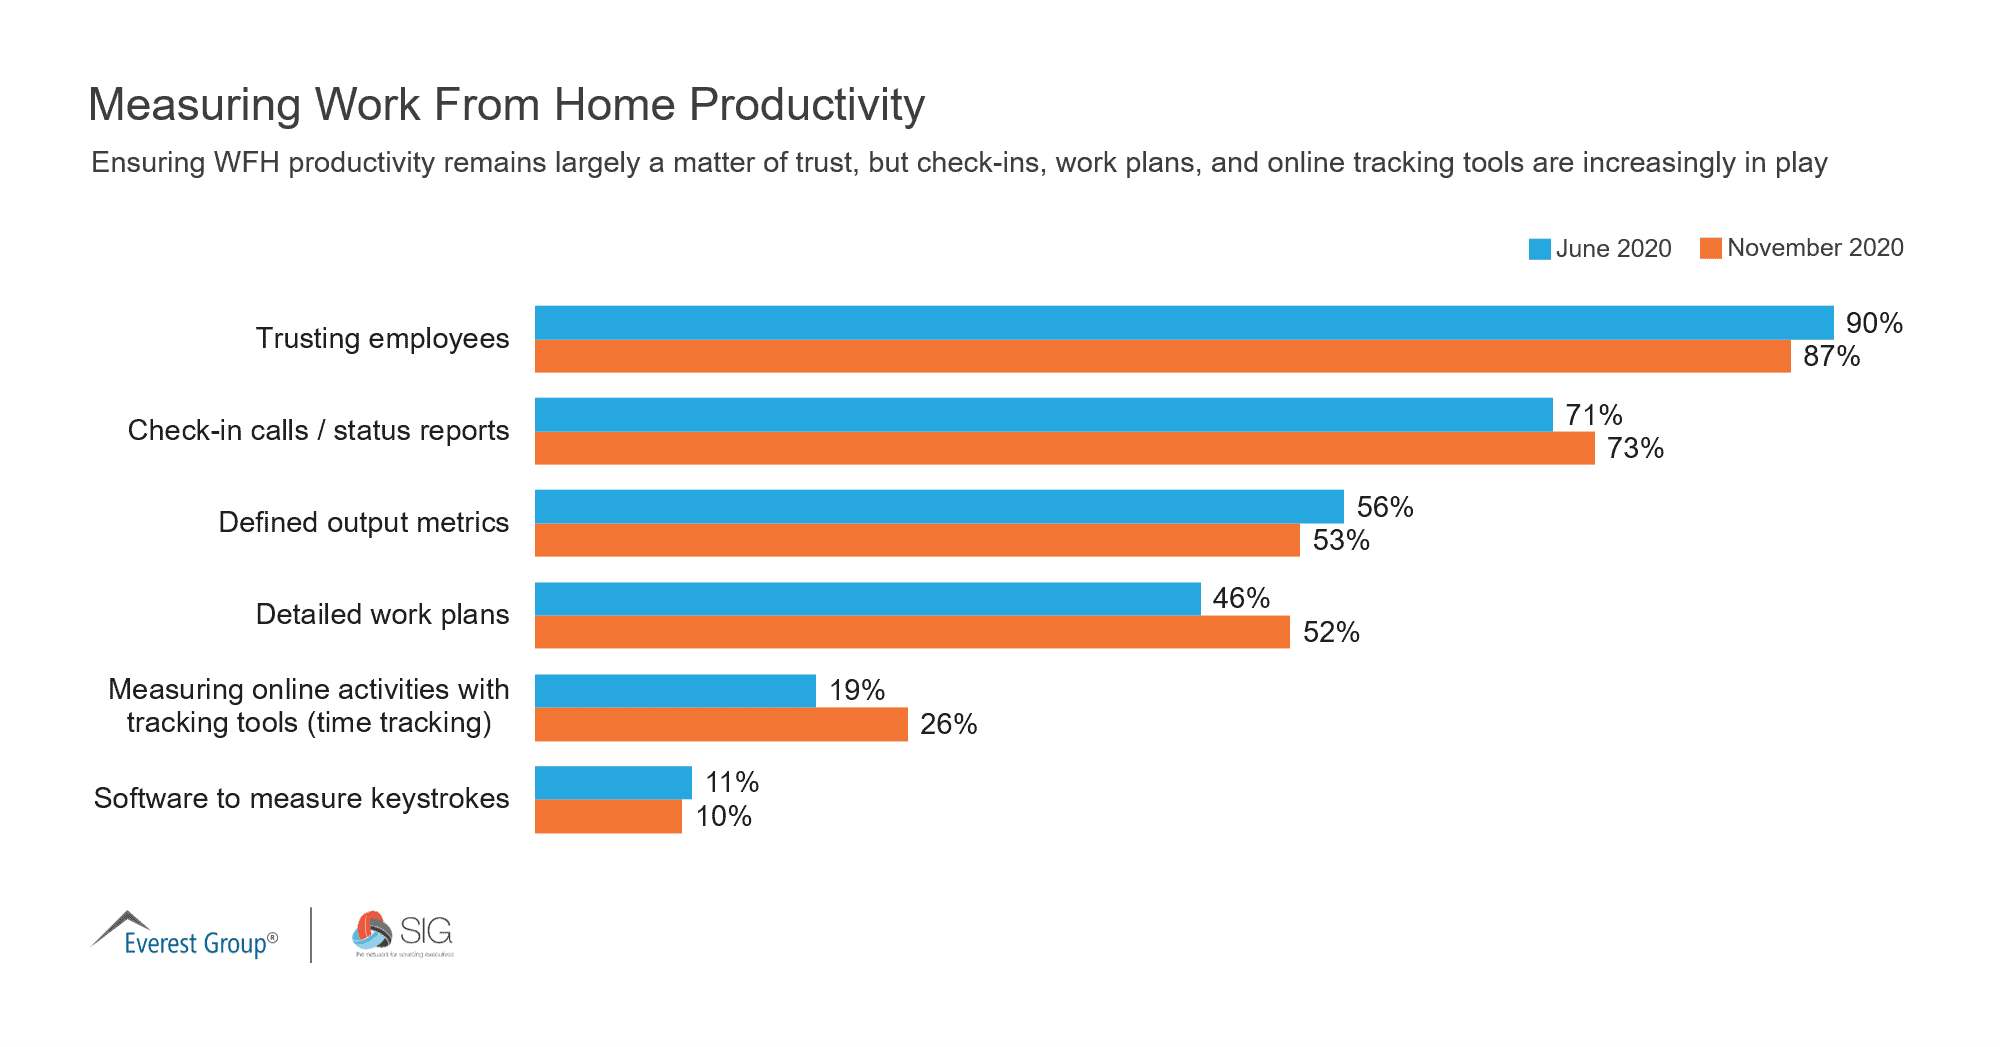 Measuring Work From Home Productivity